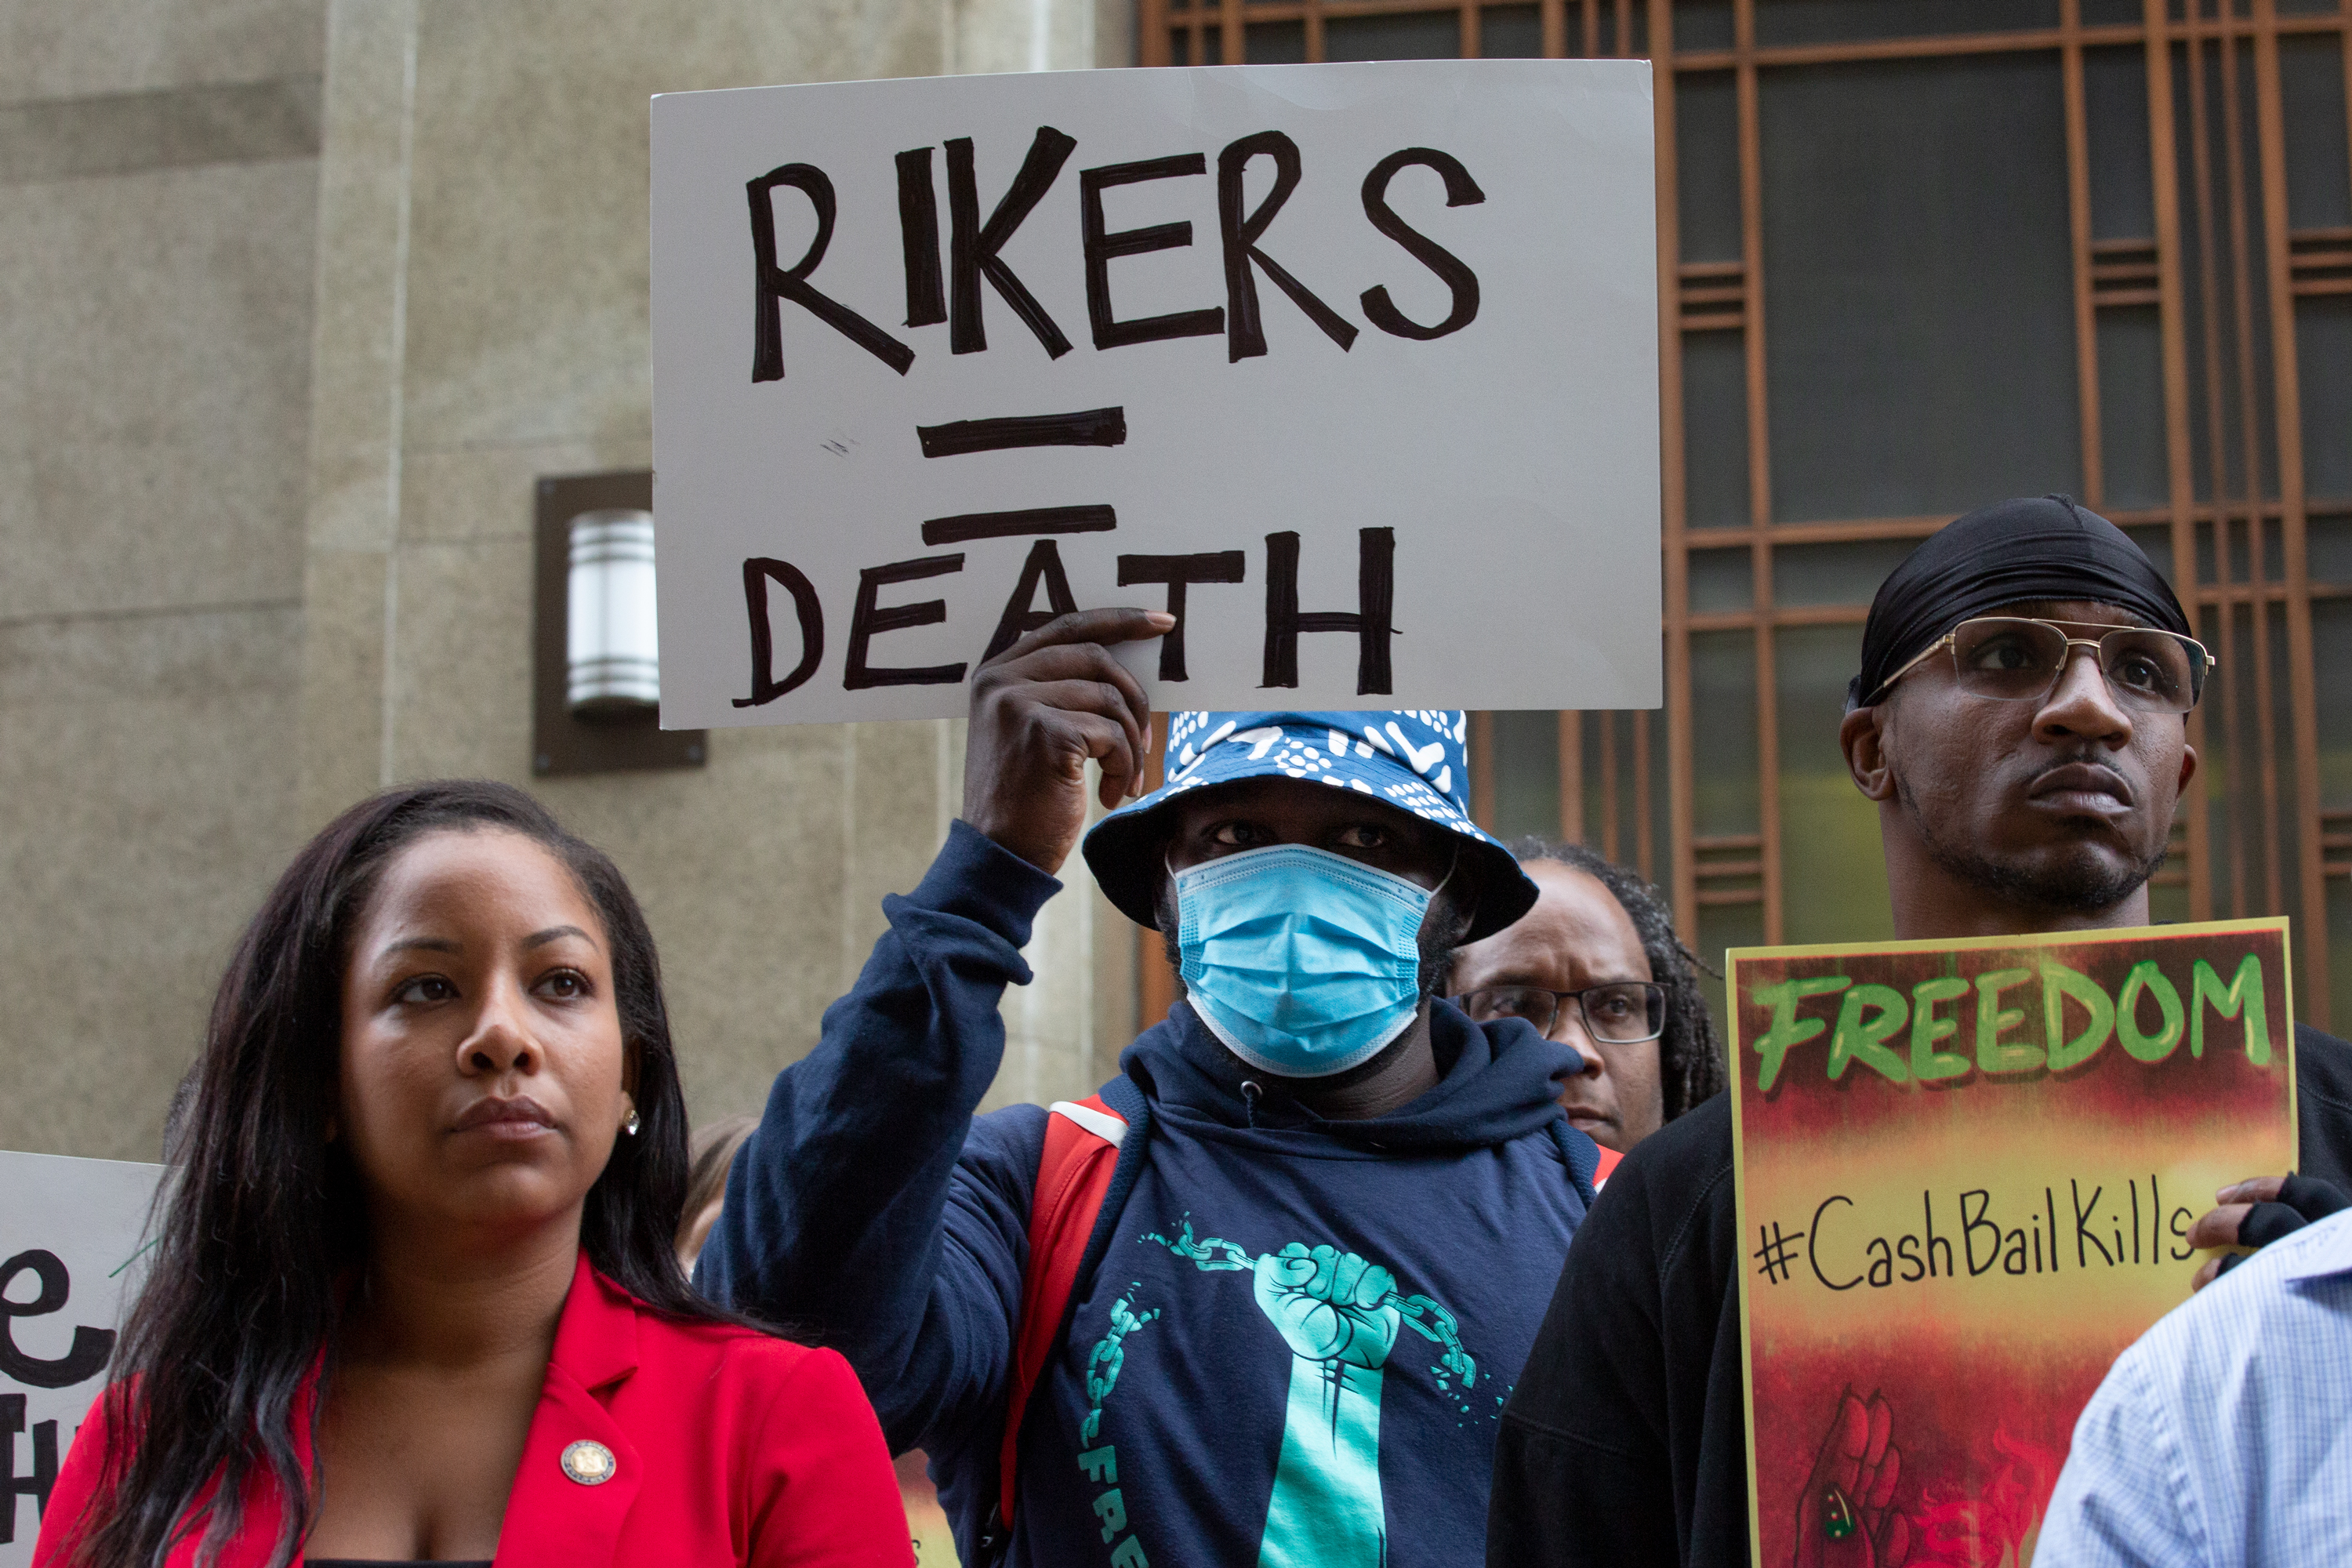 Criminal justice reform protesters advocated outside the Manhattan District Attorney's office for the end of cash bail after a dozen people died in city jails this year, Oct. 6, 2021.